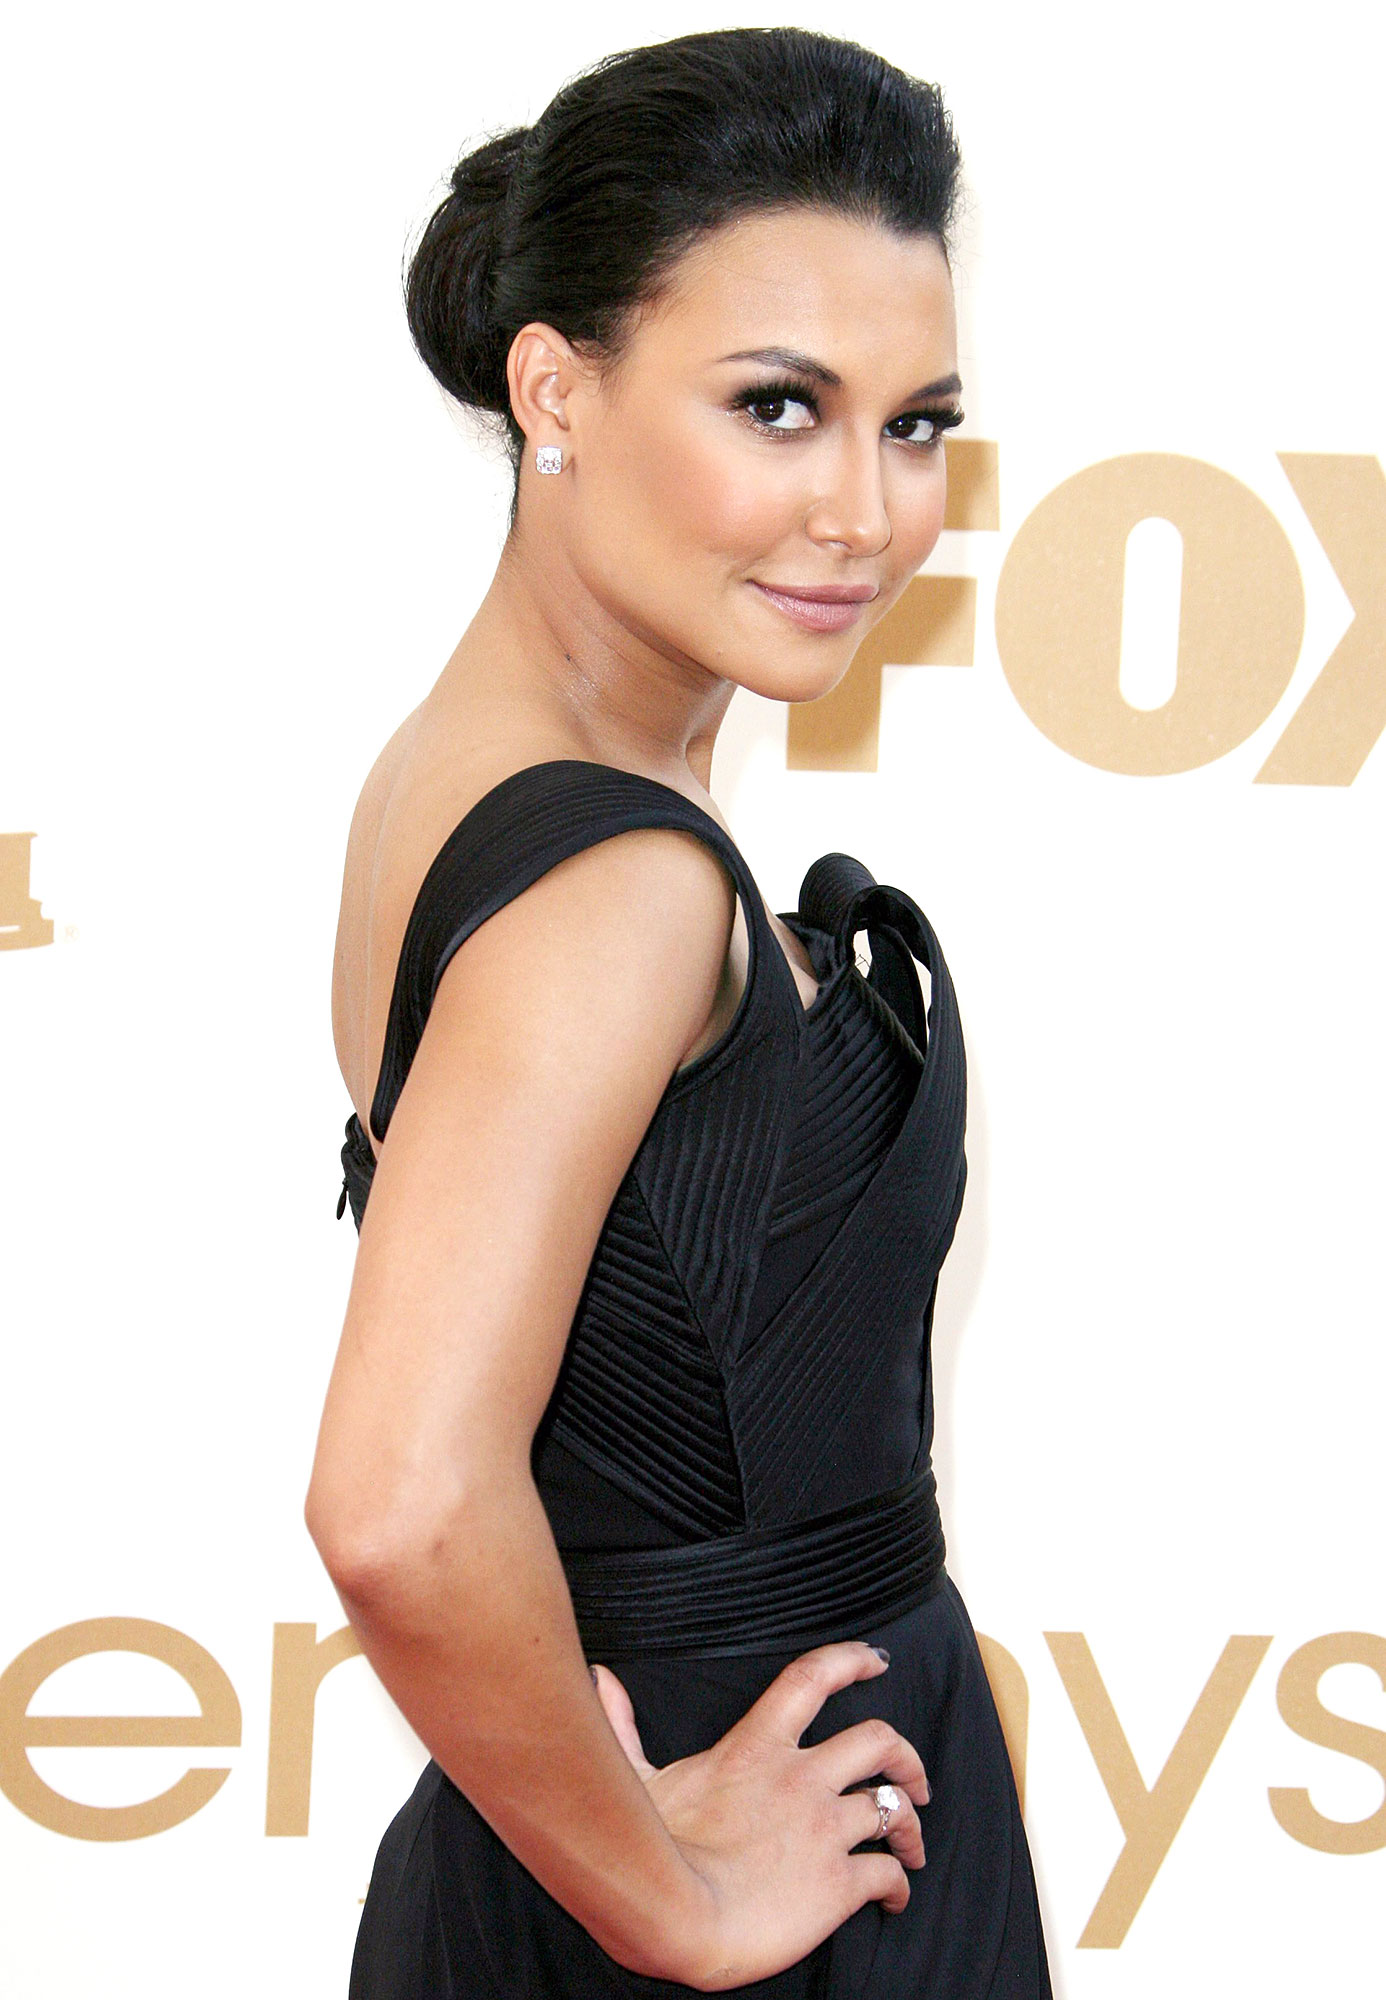 Naya Rivera Family Speaks Out After Her Death